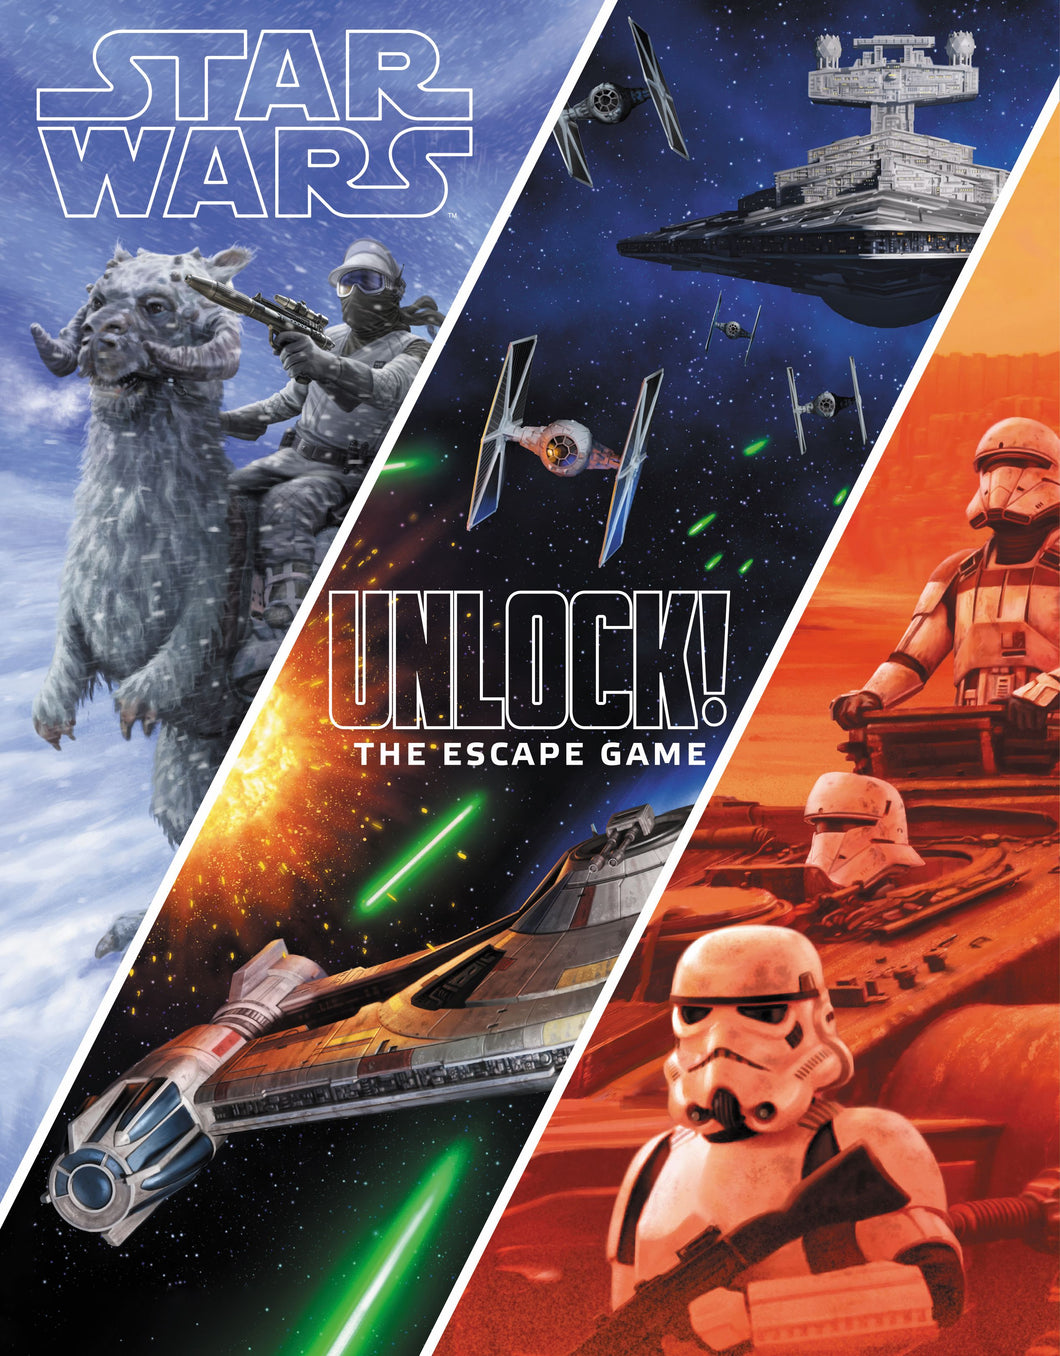 Star Wars: Unlock!